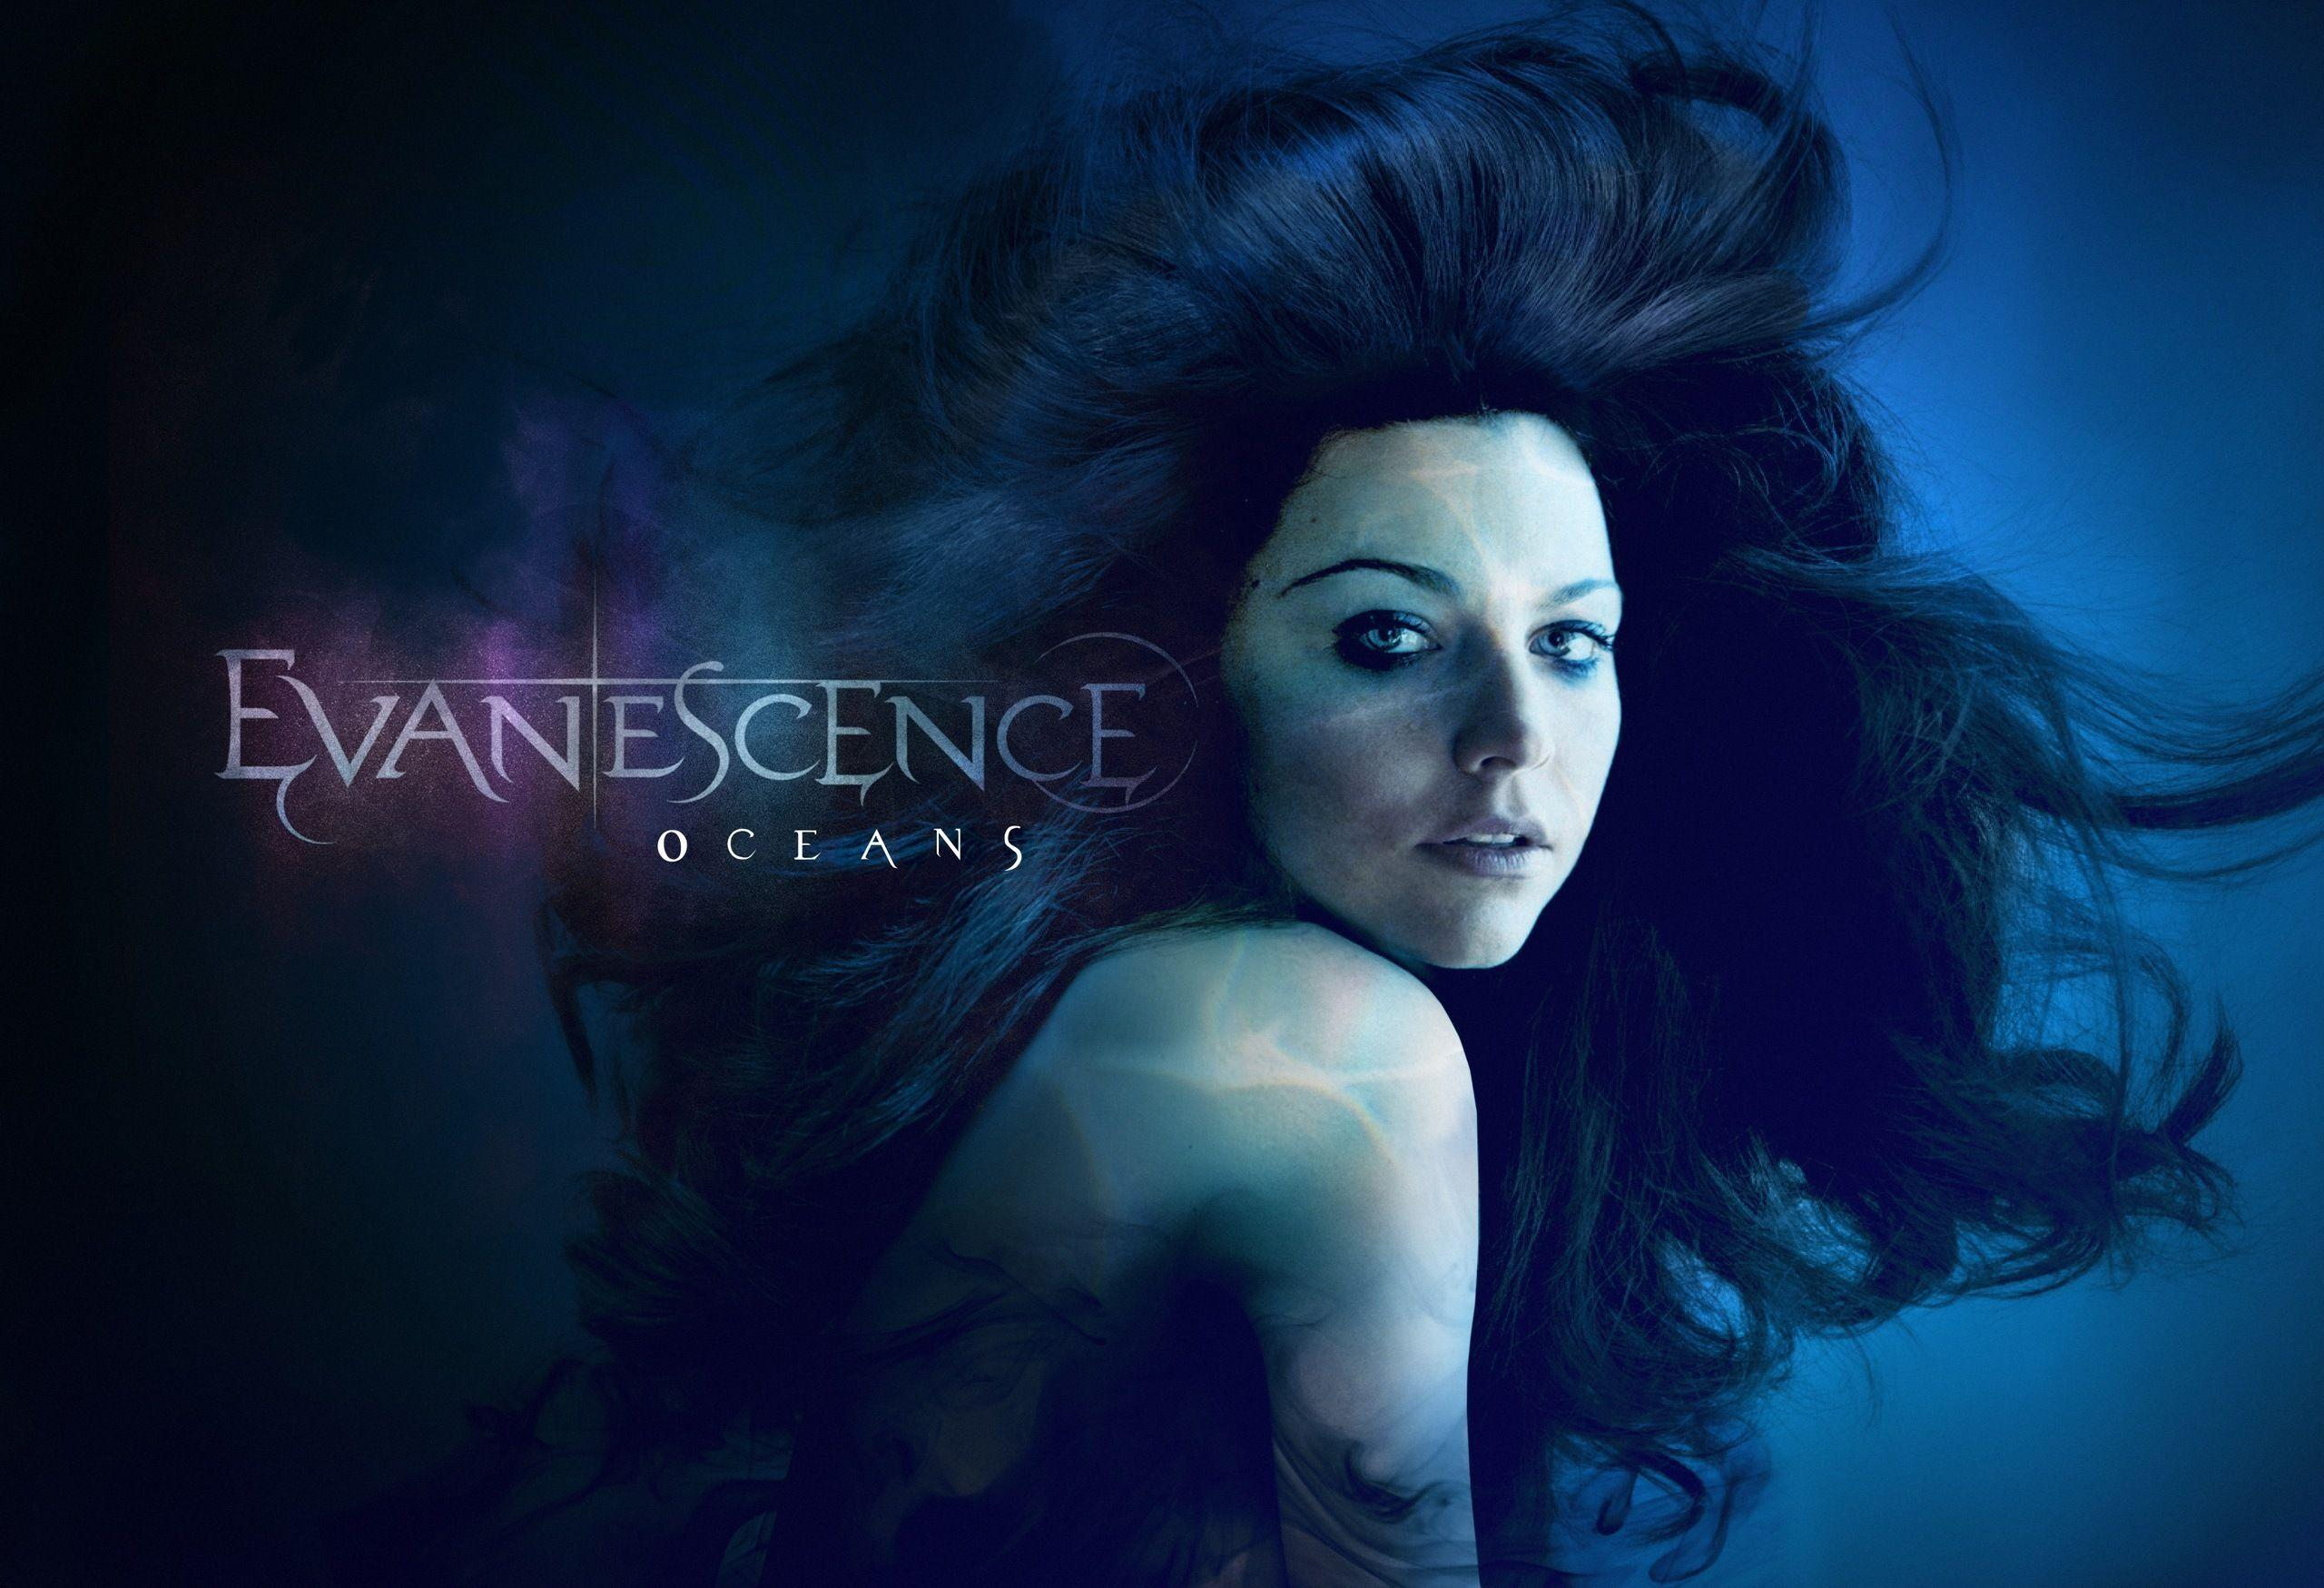 Evanescence 2016 Wallpapers 2560x1749